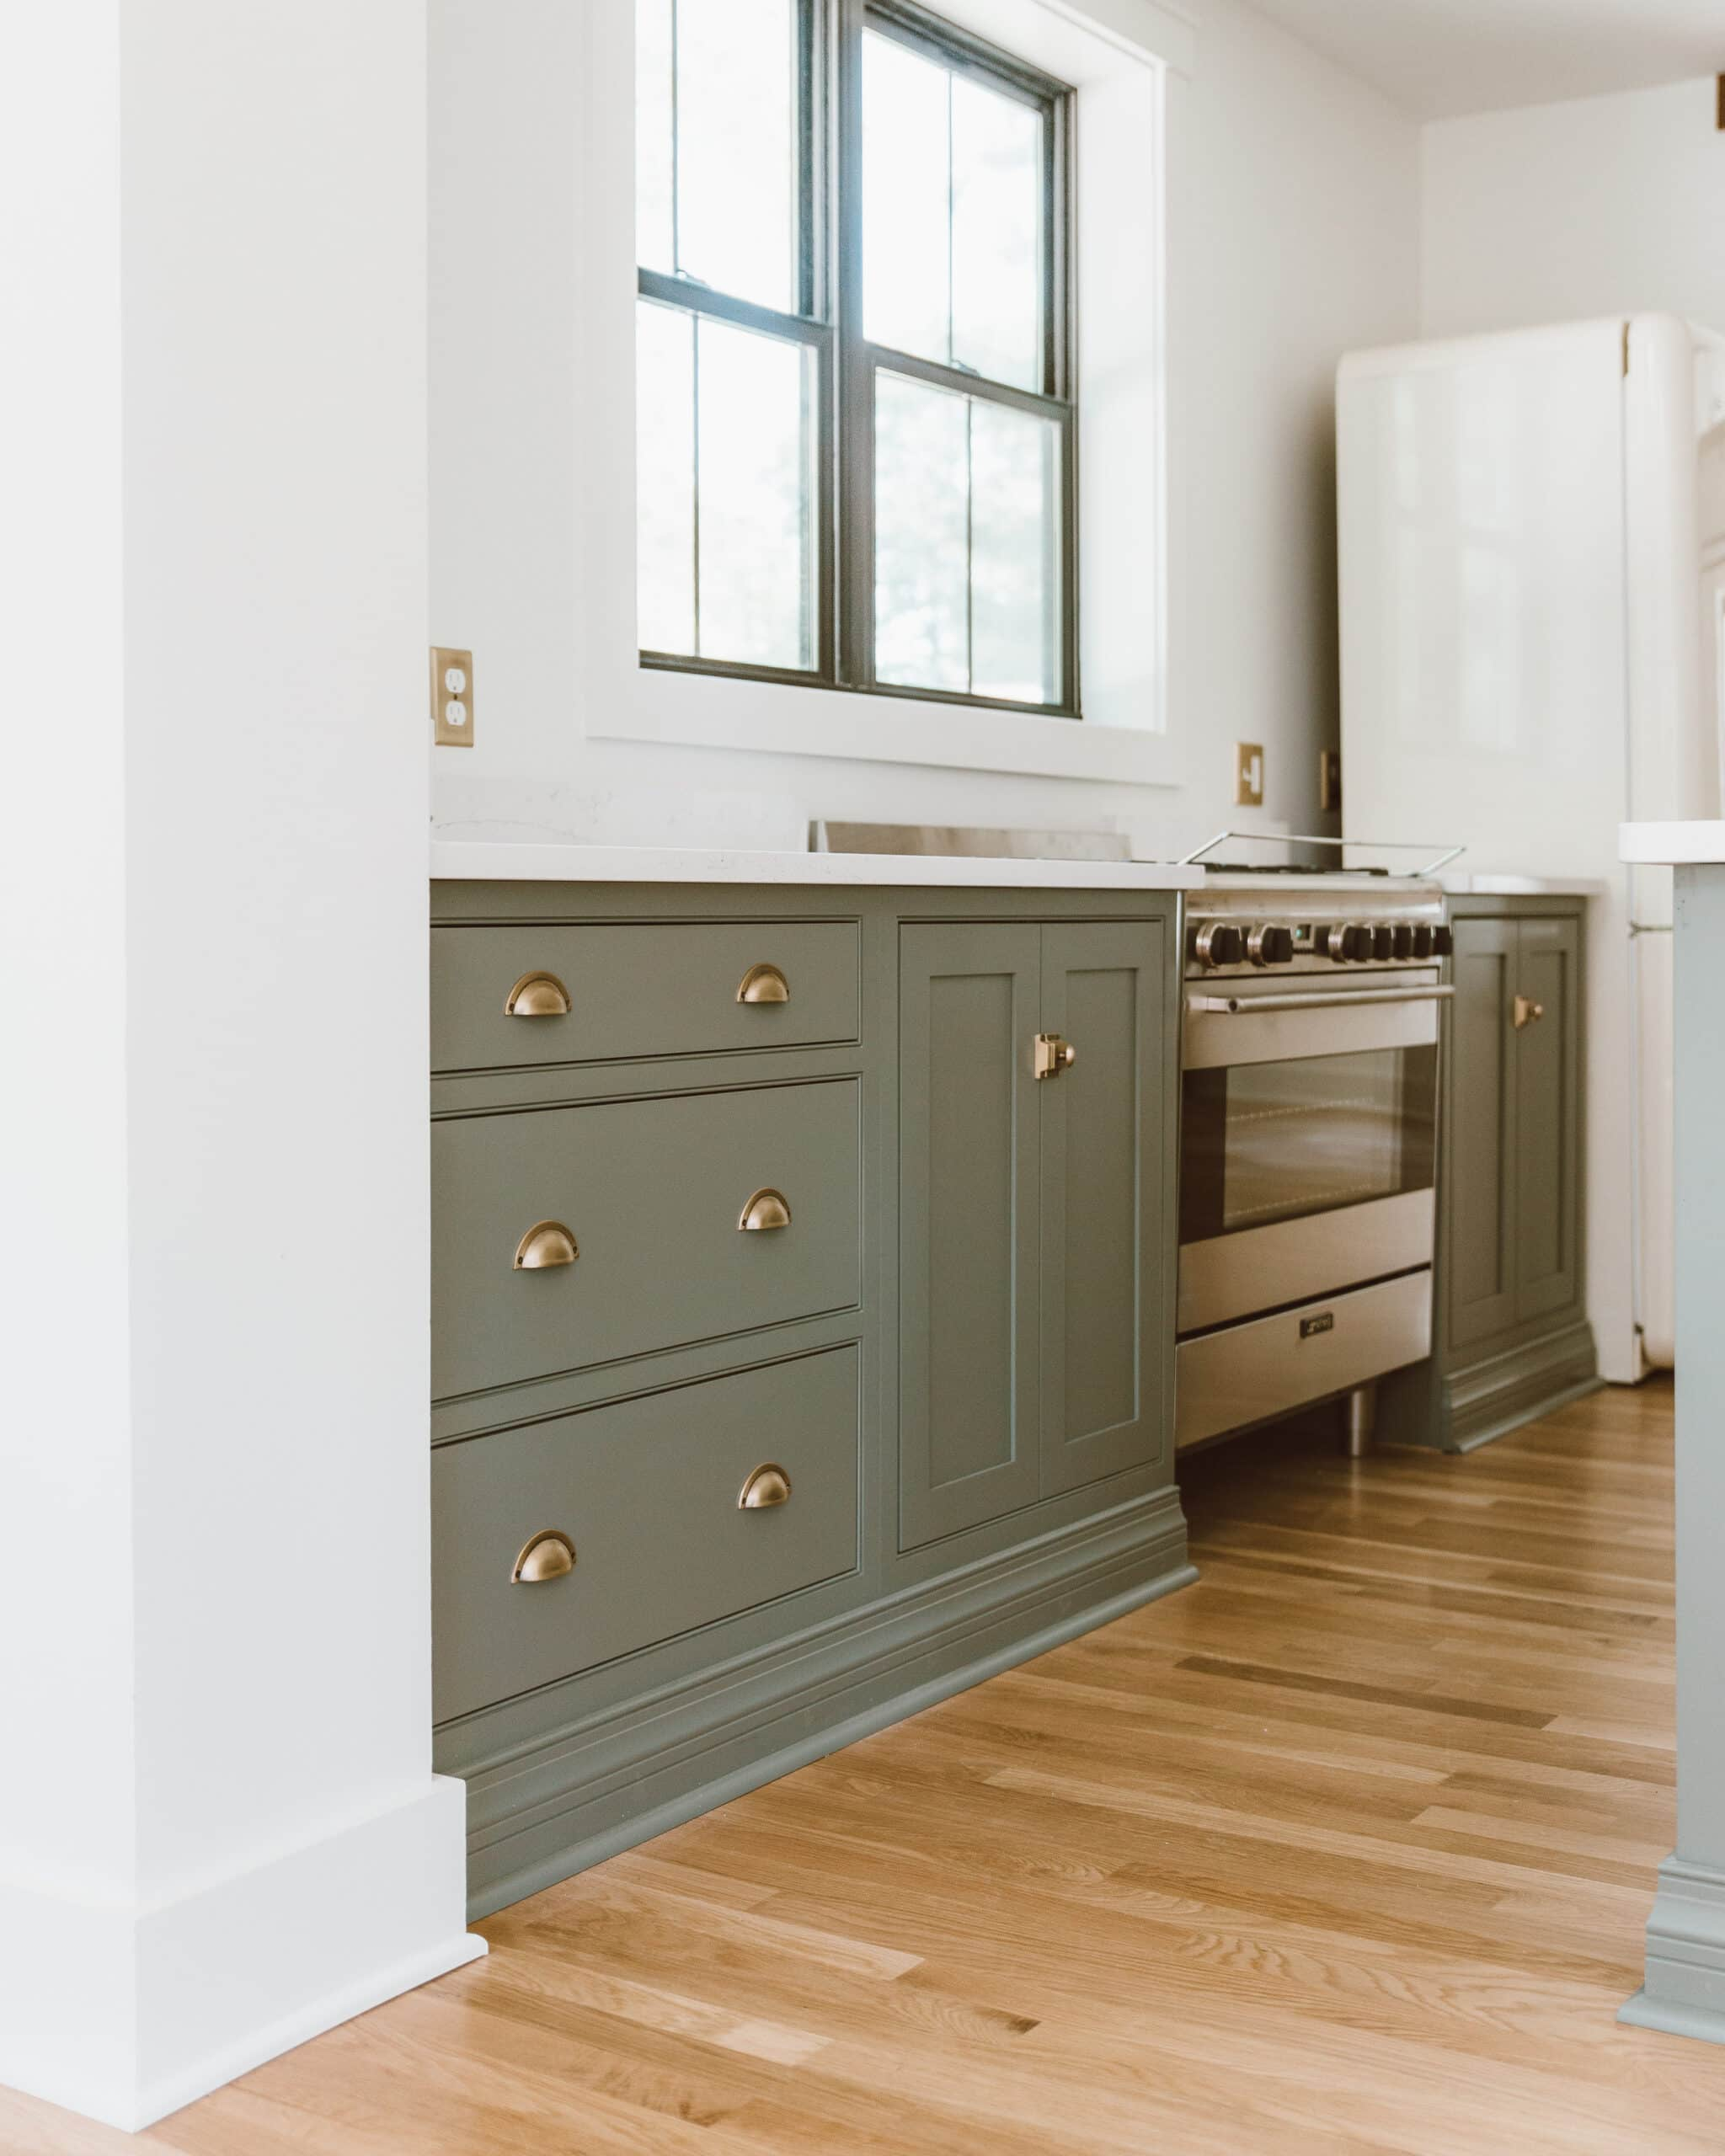 Kitchen Hardware Trends 2021 Jenna Kate At Home